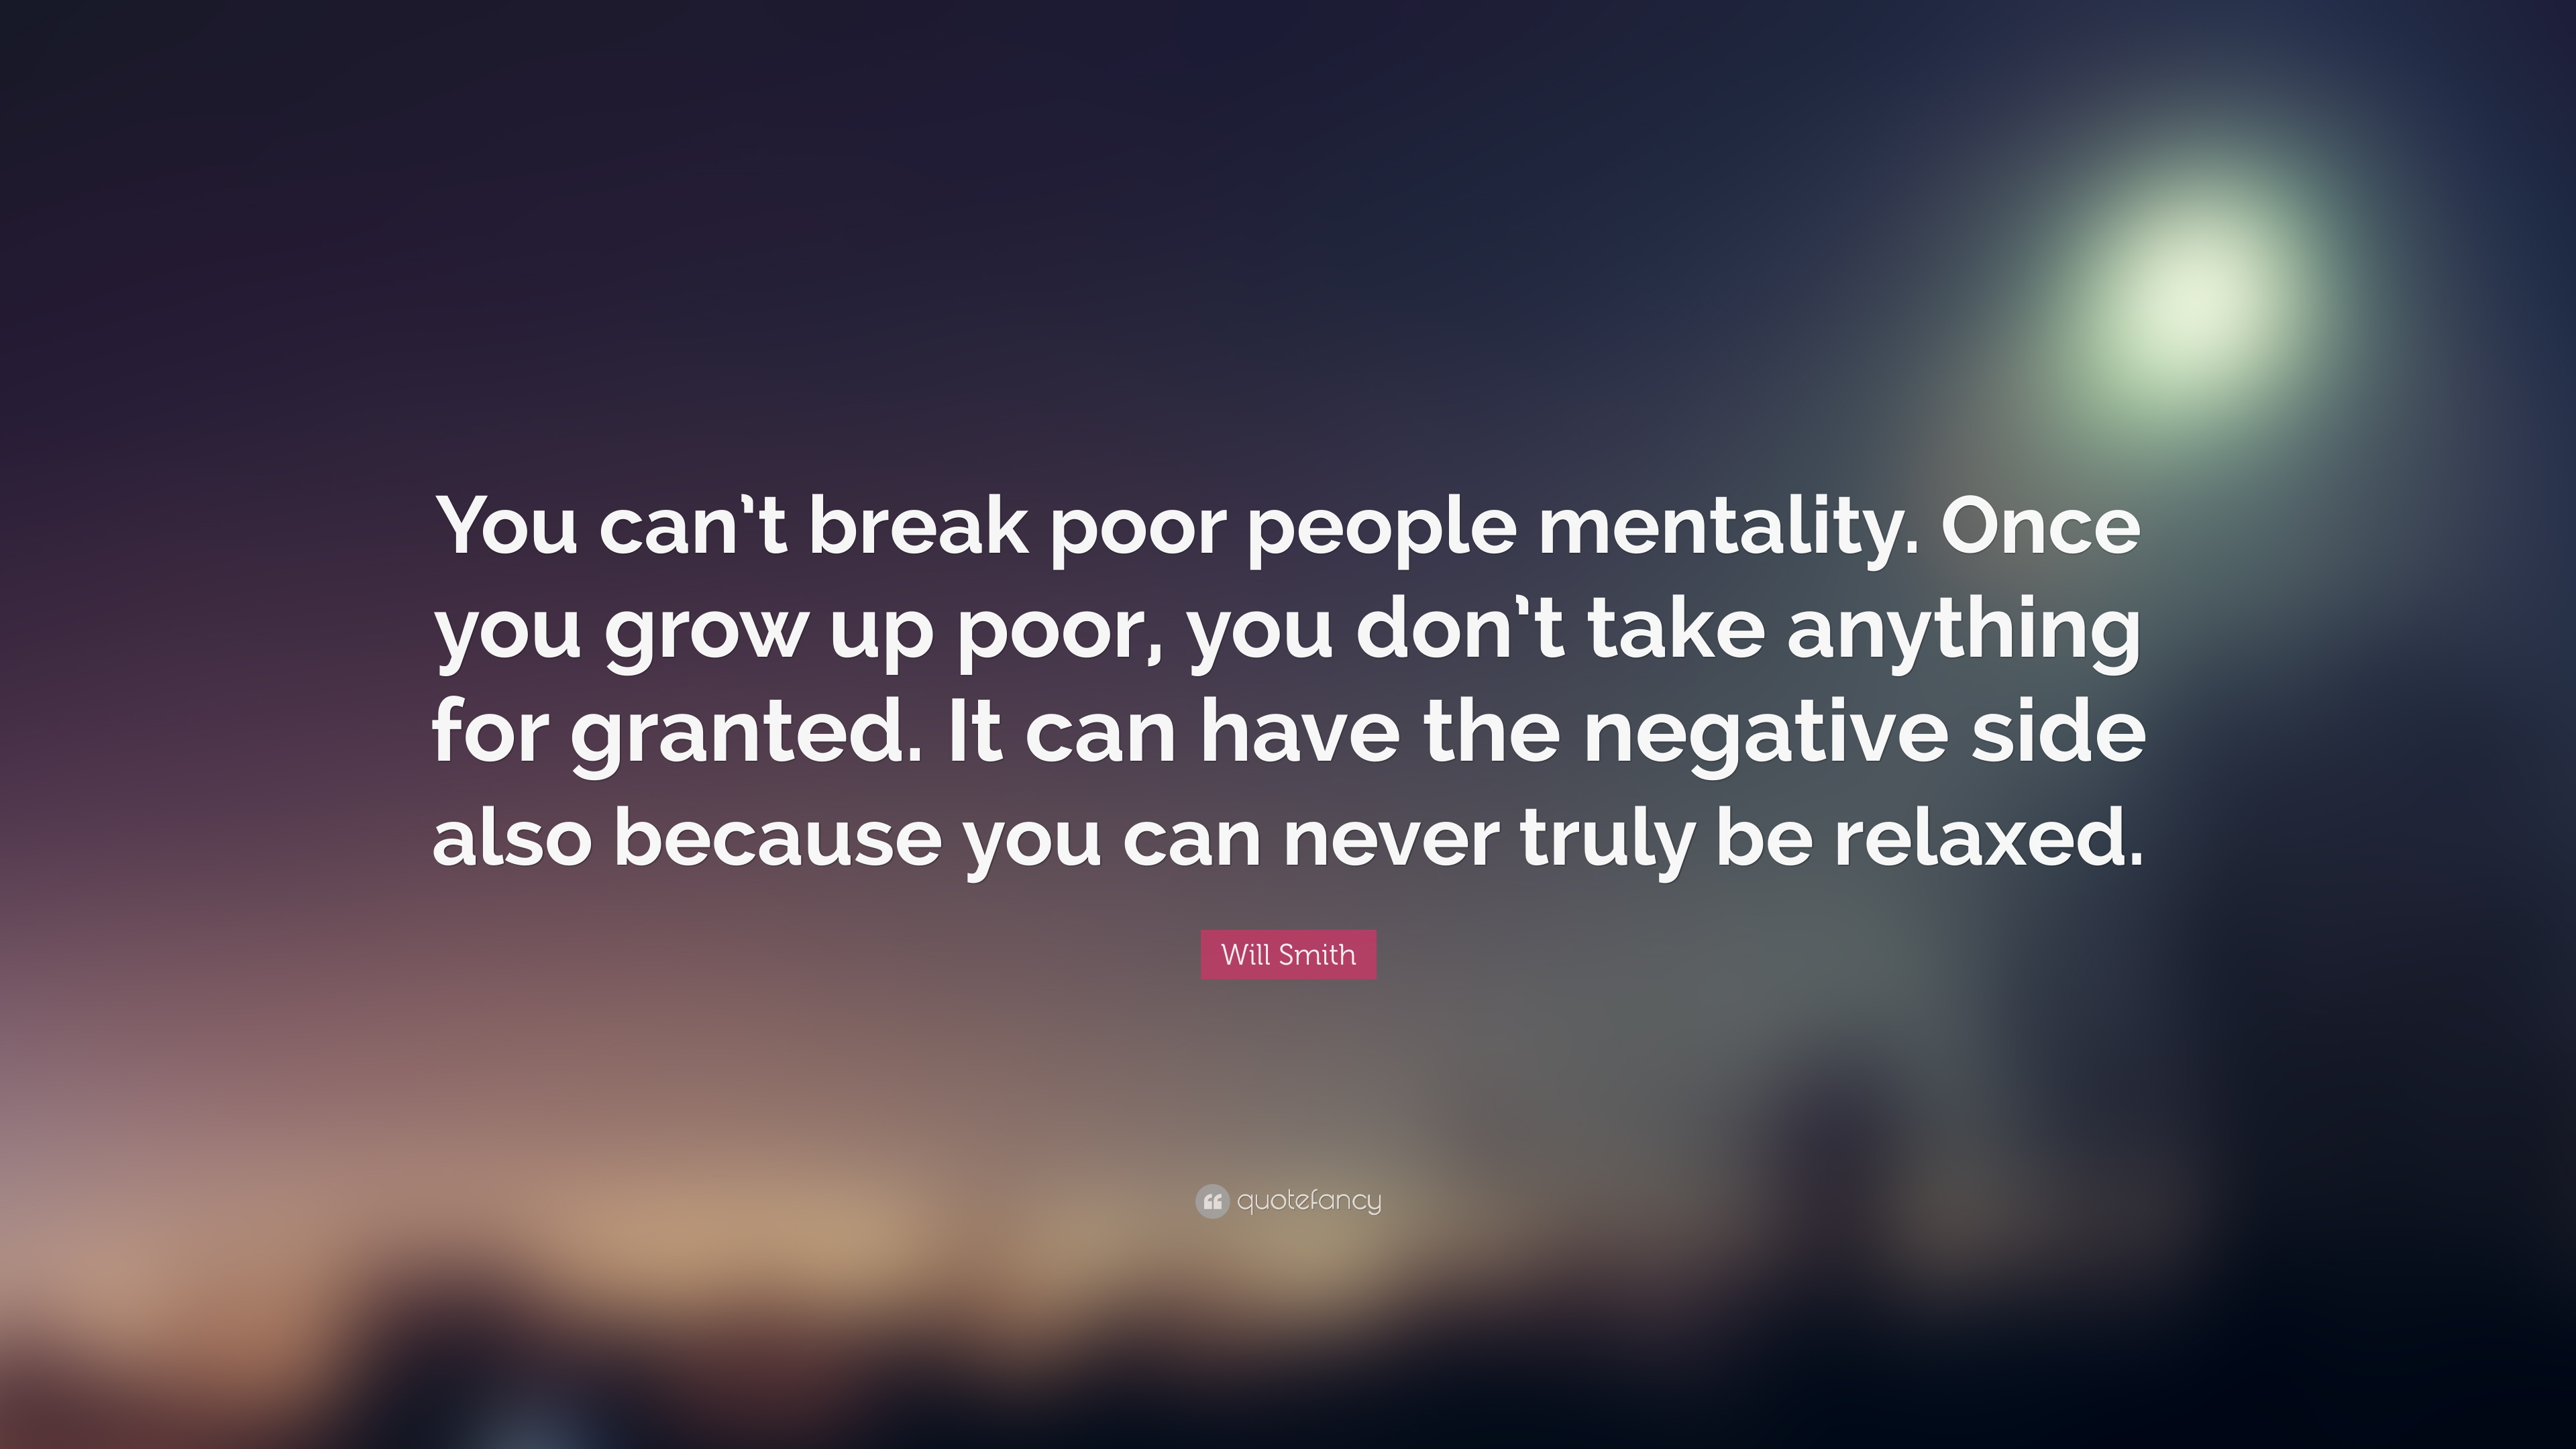 Will Smith Quote You Can T Break Poor People Mentality Once You Grow Up Poor You Don T Take Anything For Granted It Can Have The Negat 10 Wallpapers Quotefancy